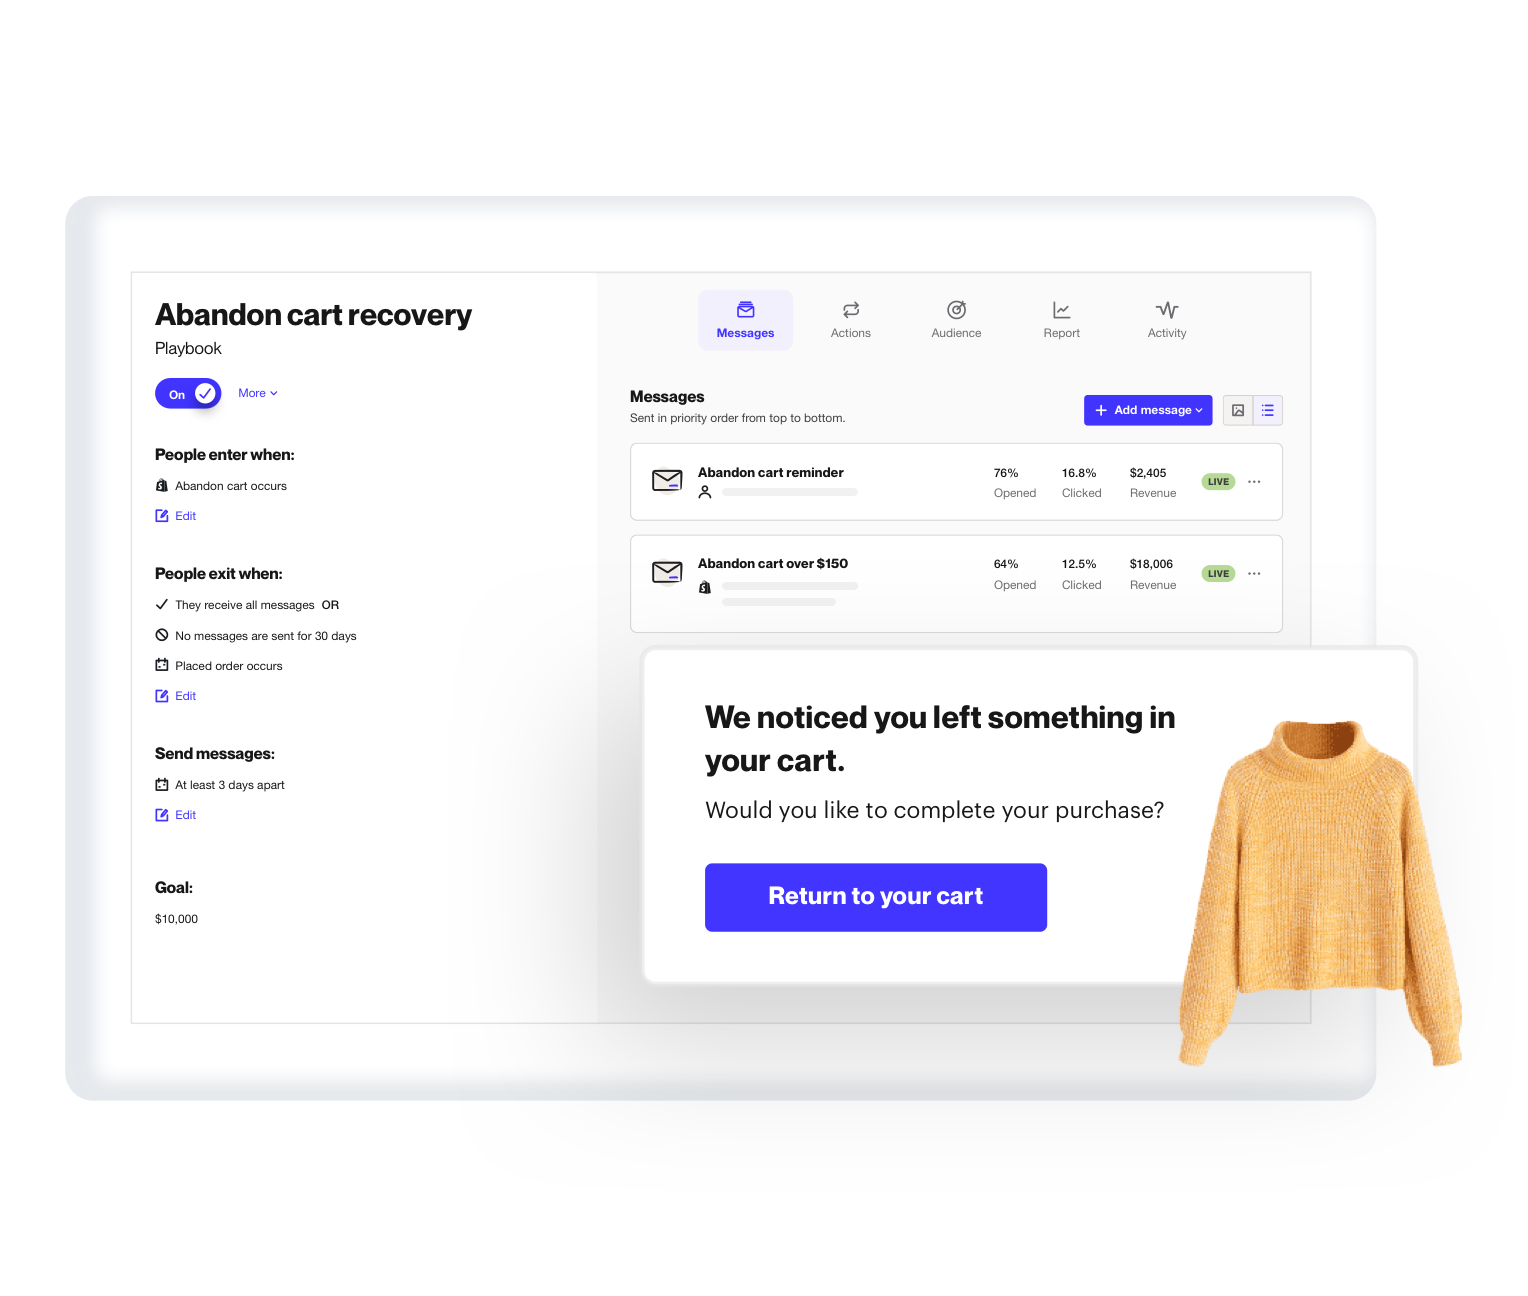 We setup all the campaigns you need to grow your store like abandoned cart, new customer welcome, birthday coupons and browser abandonment.